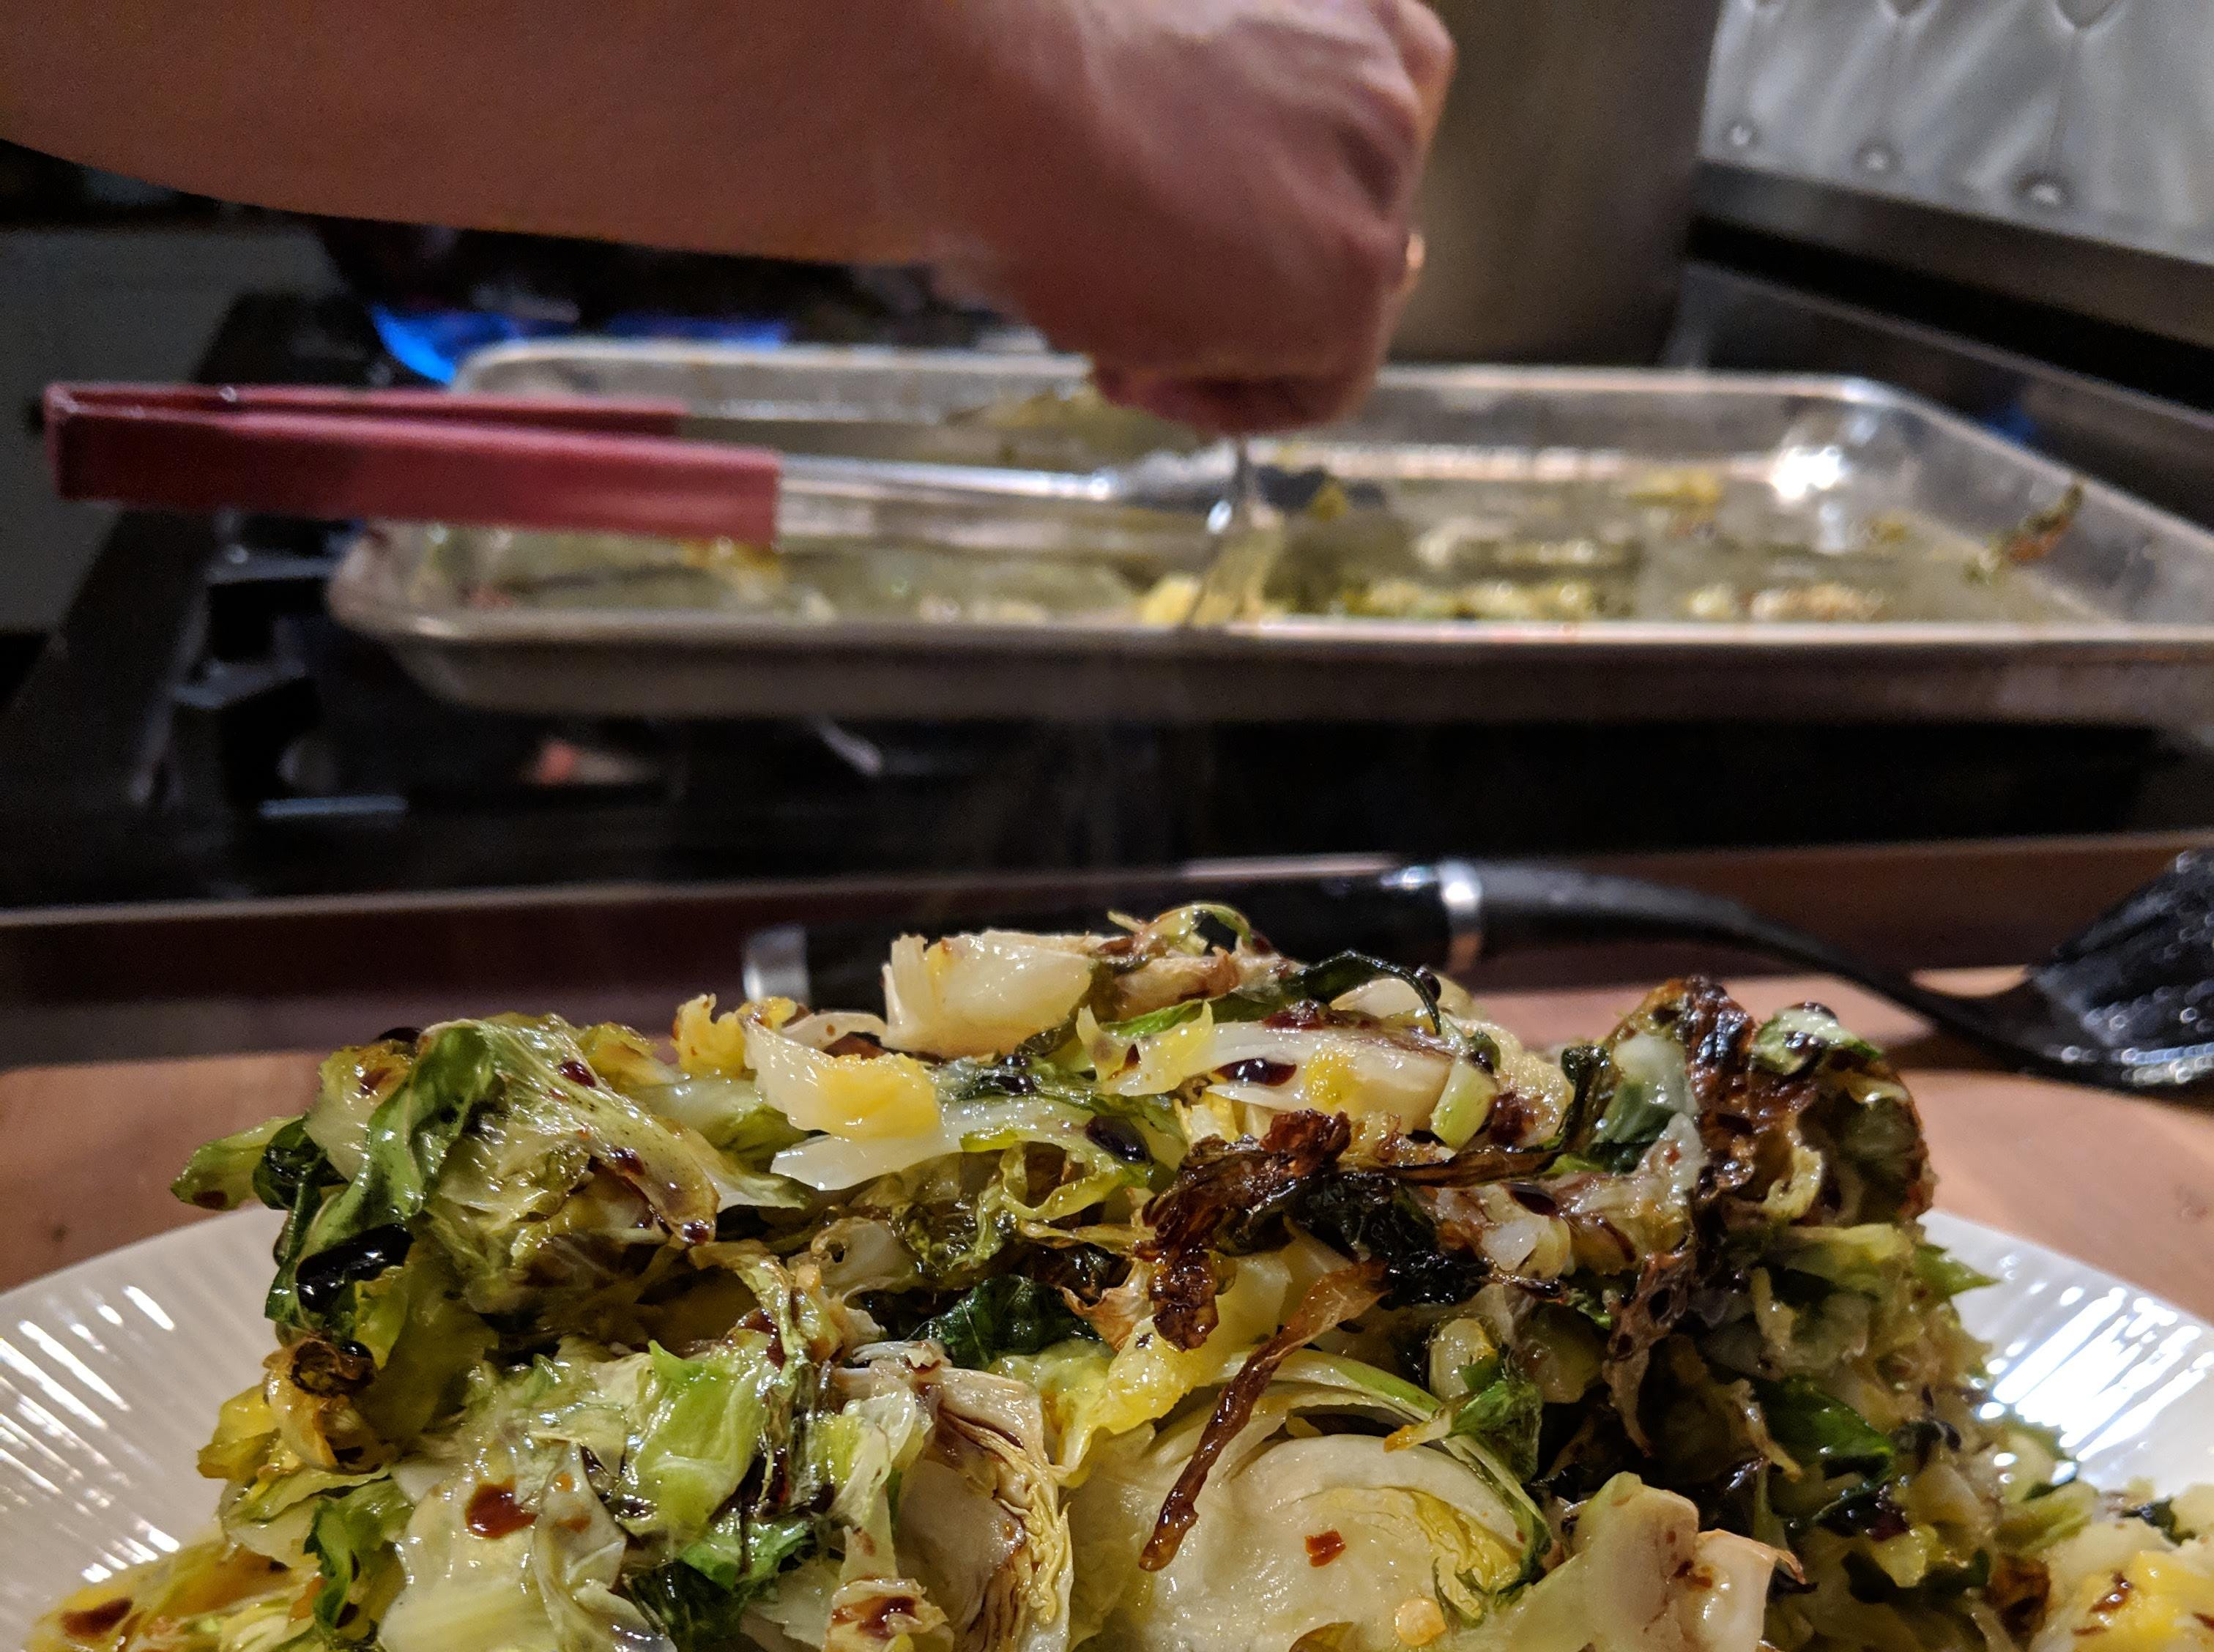 Volare chef Josh Moore recommends serving some roasted Brussels sprouts alongside the fish.